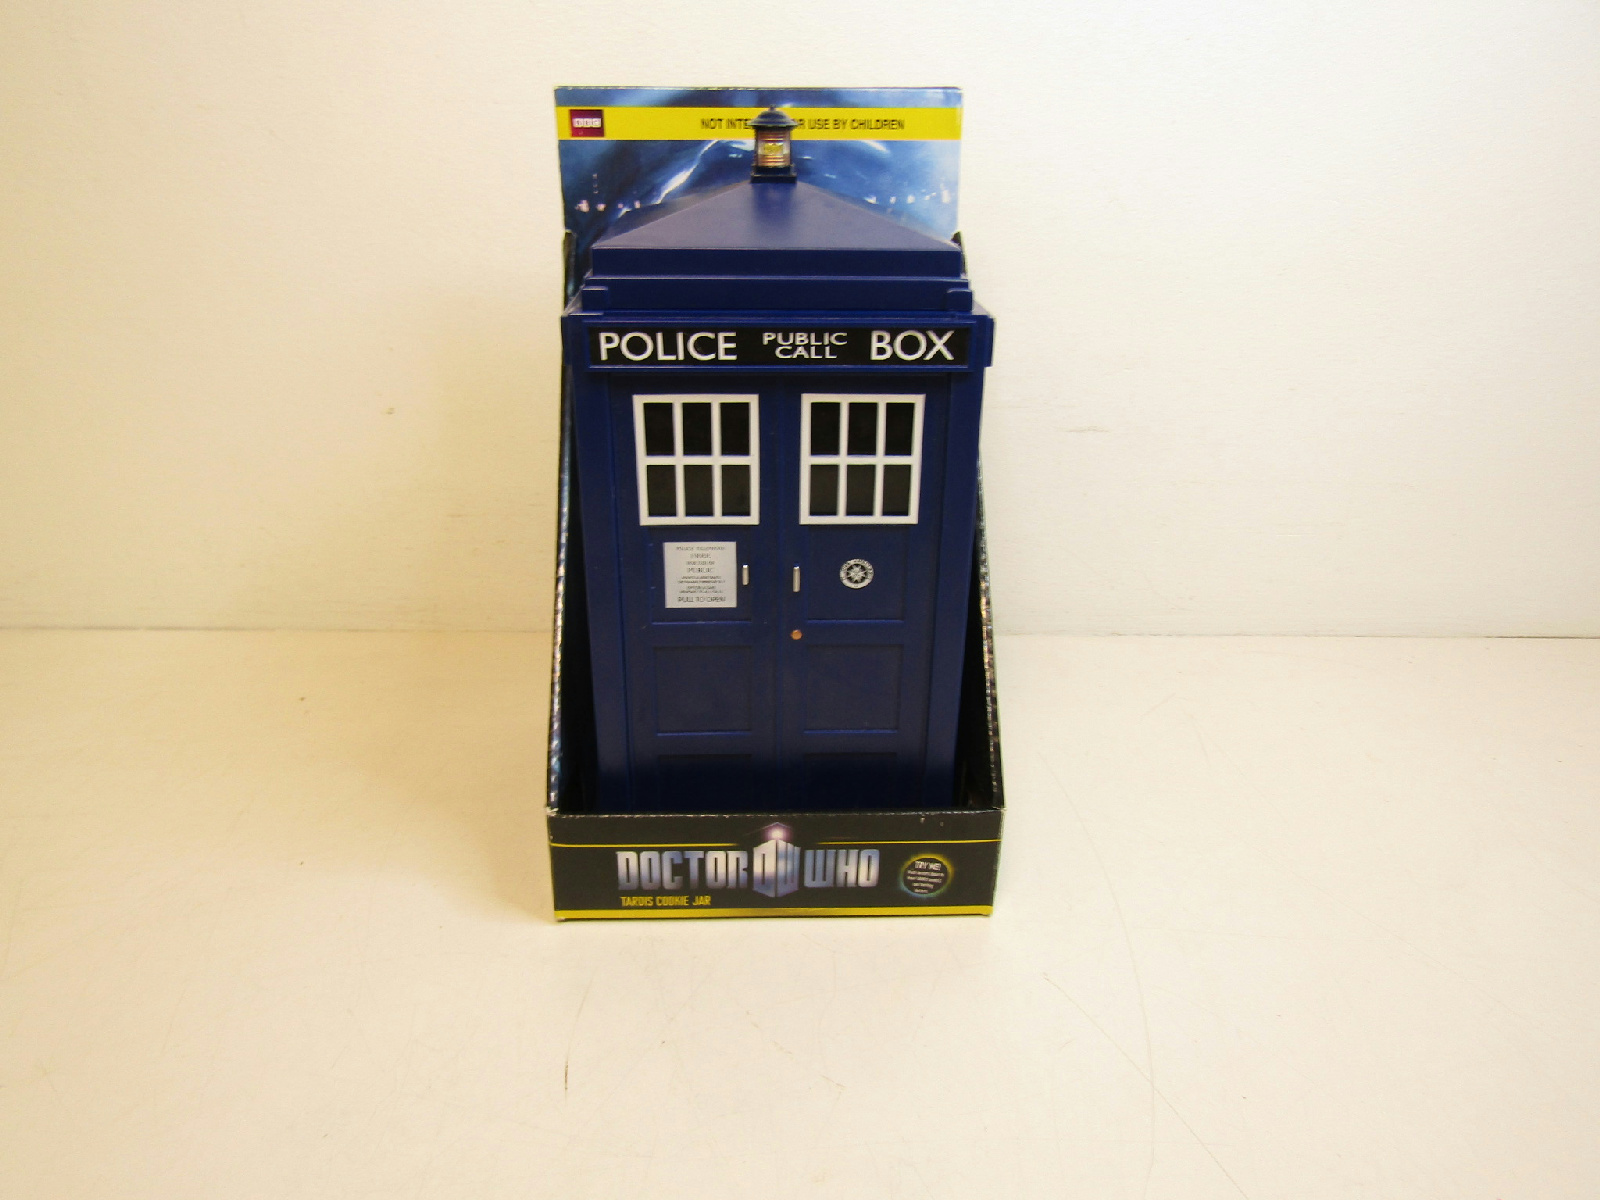 Doctor who tardis cookie jar police box lights and sounds needs battery cad picclick ca - Tardis cookie jar ...